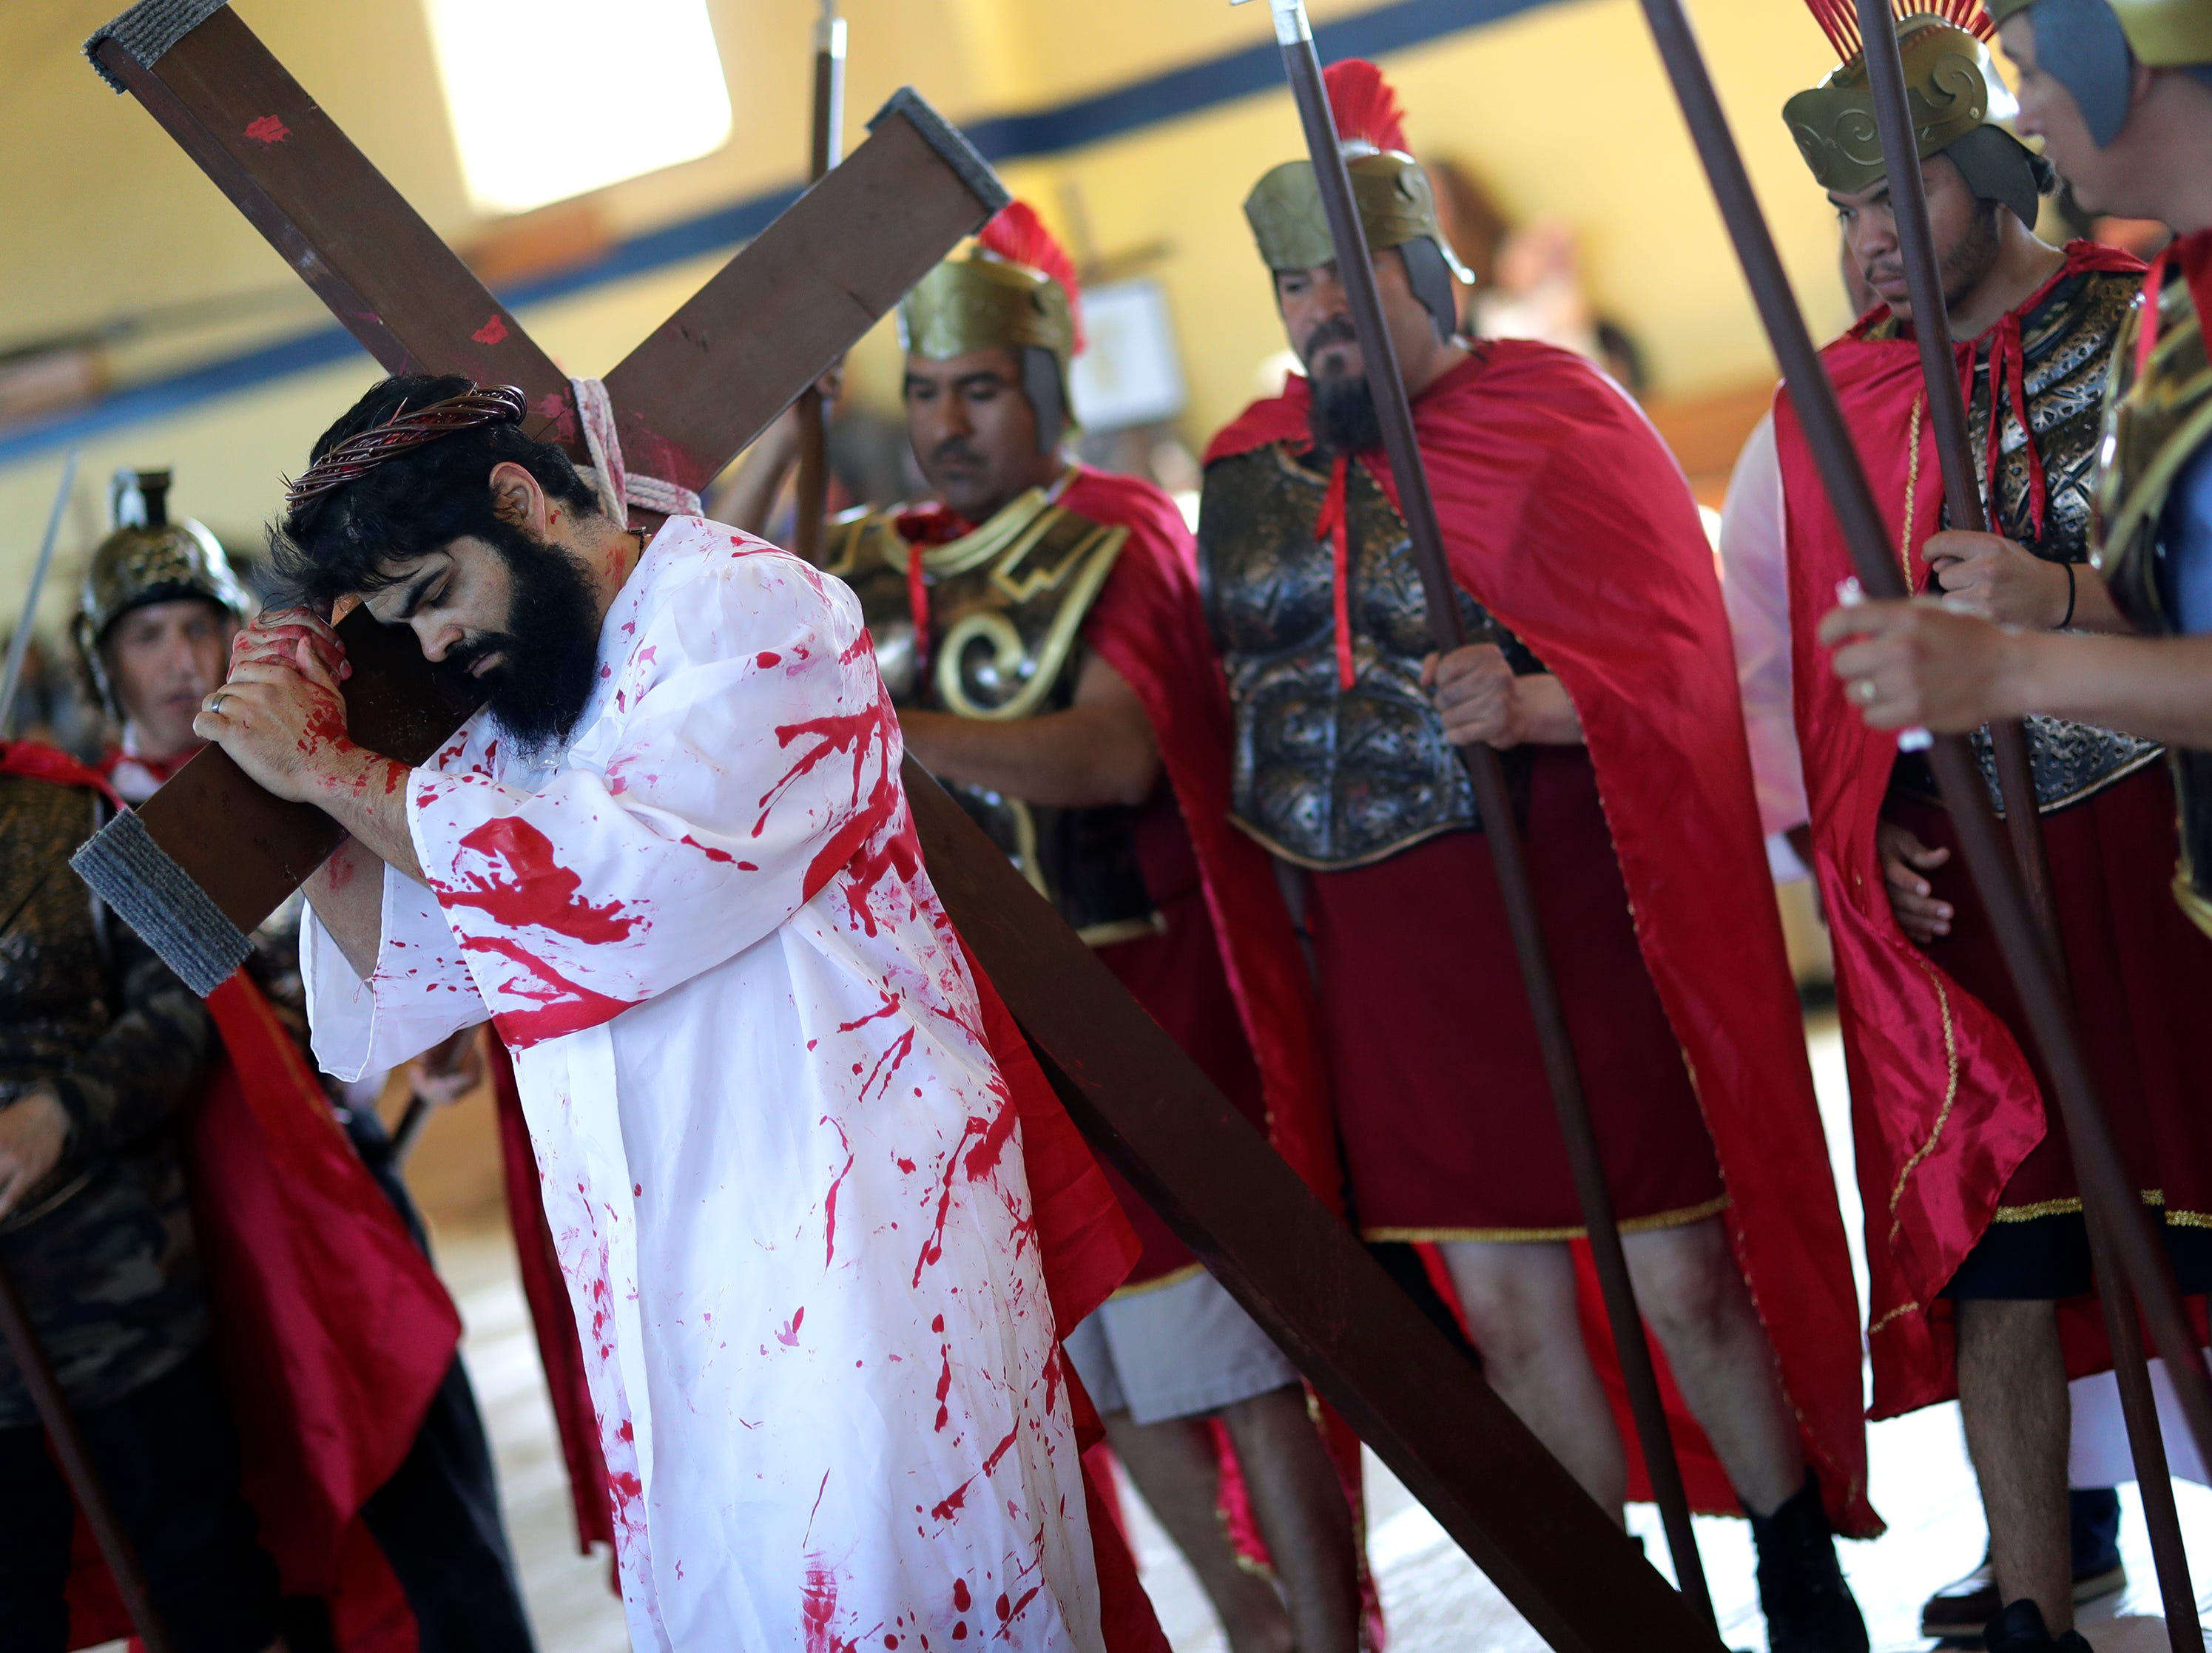 St. Therese Parish member Marcos Cisneros plays the part of Jesus during a Passion Play and completes the Stations of the Cross Friday, April 19, 2019, in Appleton, Wis. Dan Powers/USA TODAY NETWORK-Wisconsin